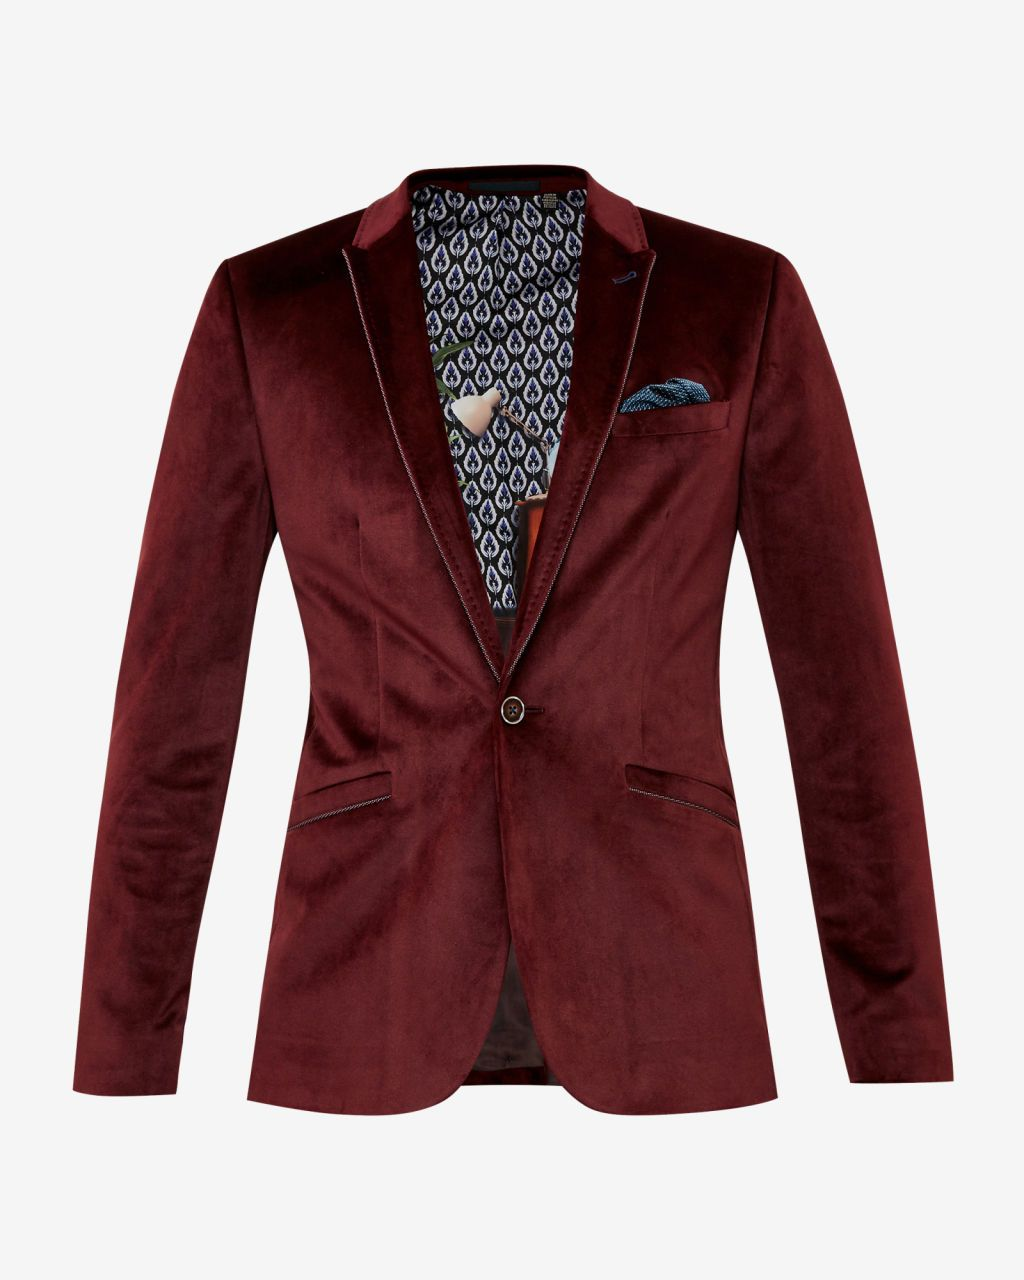 Velvet blazer - Dark Red | Blazers | Ted Baker UK | The Gent's ...